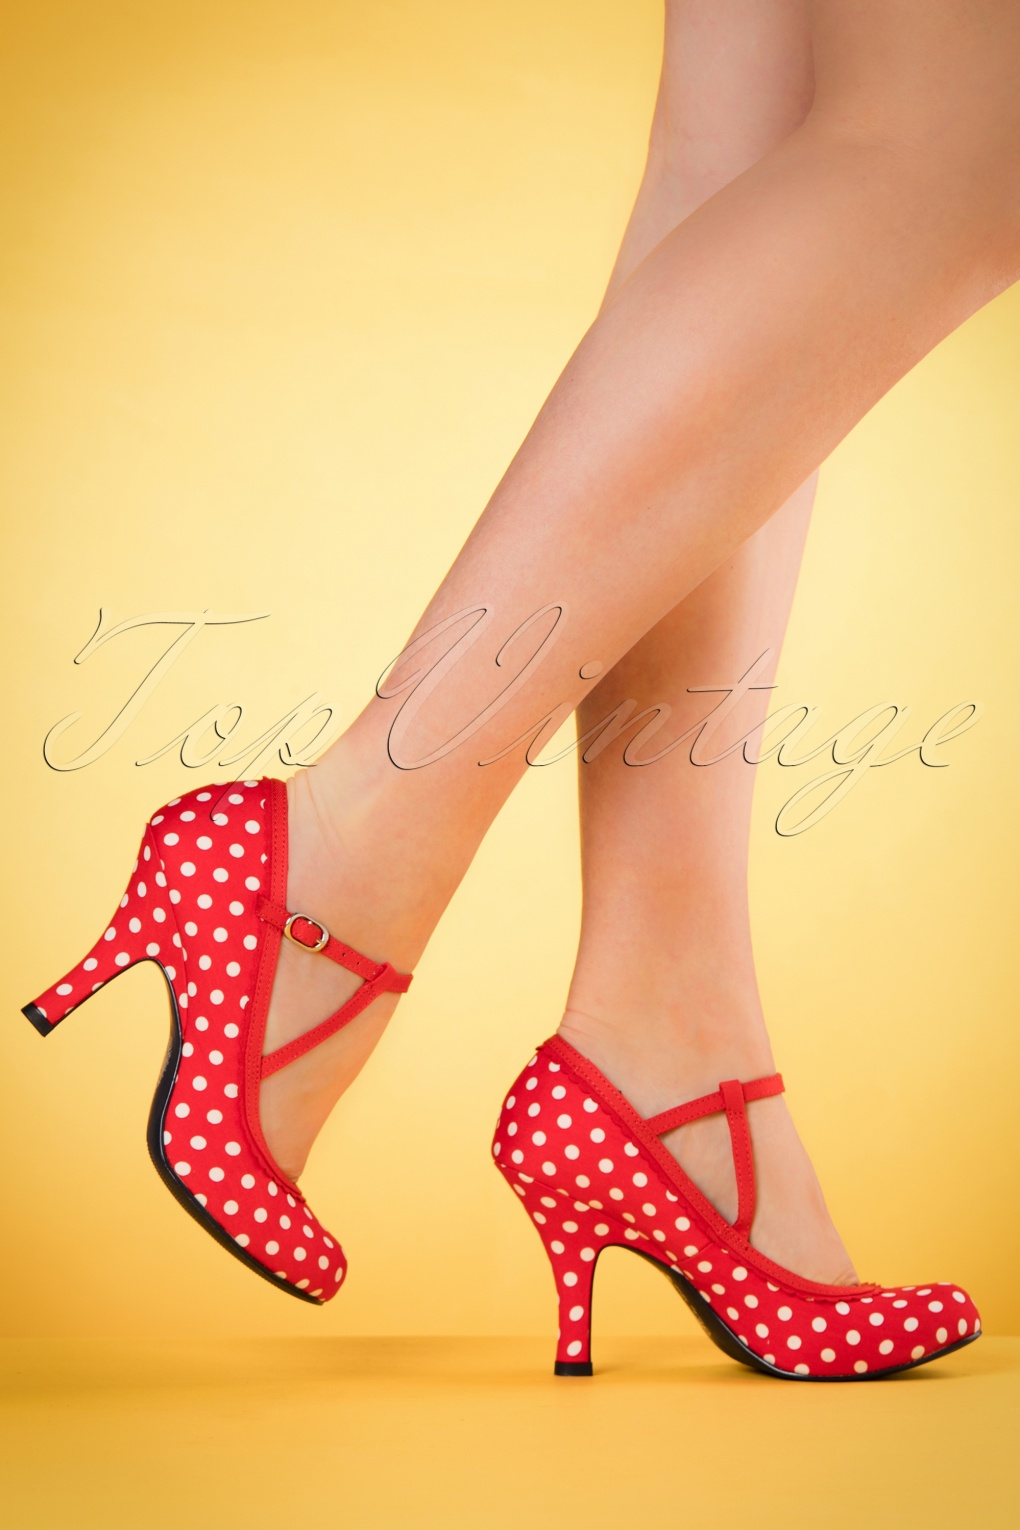 Pin Up Shoes- Heels & Flats 50s Jessica Ankle Strap Pumps in Red Polkadots £59.41 AT vintagedancer.com